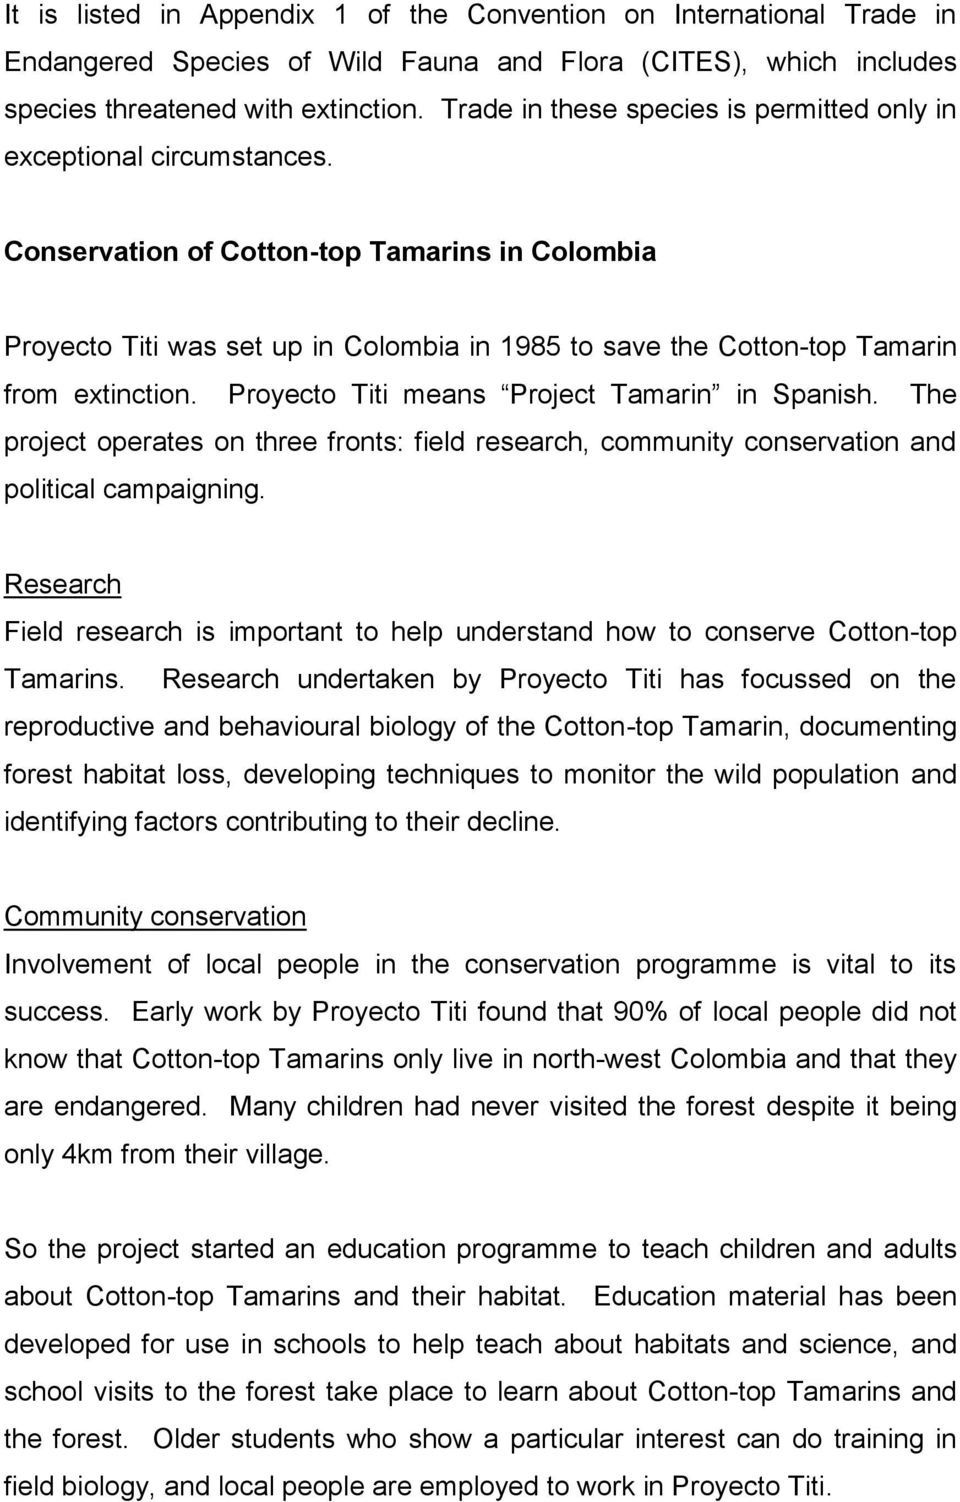 Conservation of Cotton-top Tamarins in Colombia Proyecto Titi was set up in Colombia in 1985 to save the Cotton-top Tamarin from extinction. Proyecto Titi means Project Tamarin in Spanish.